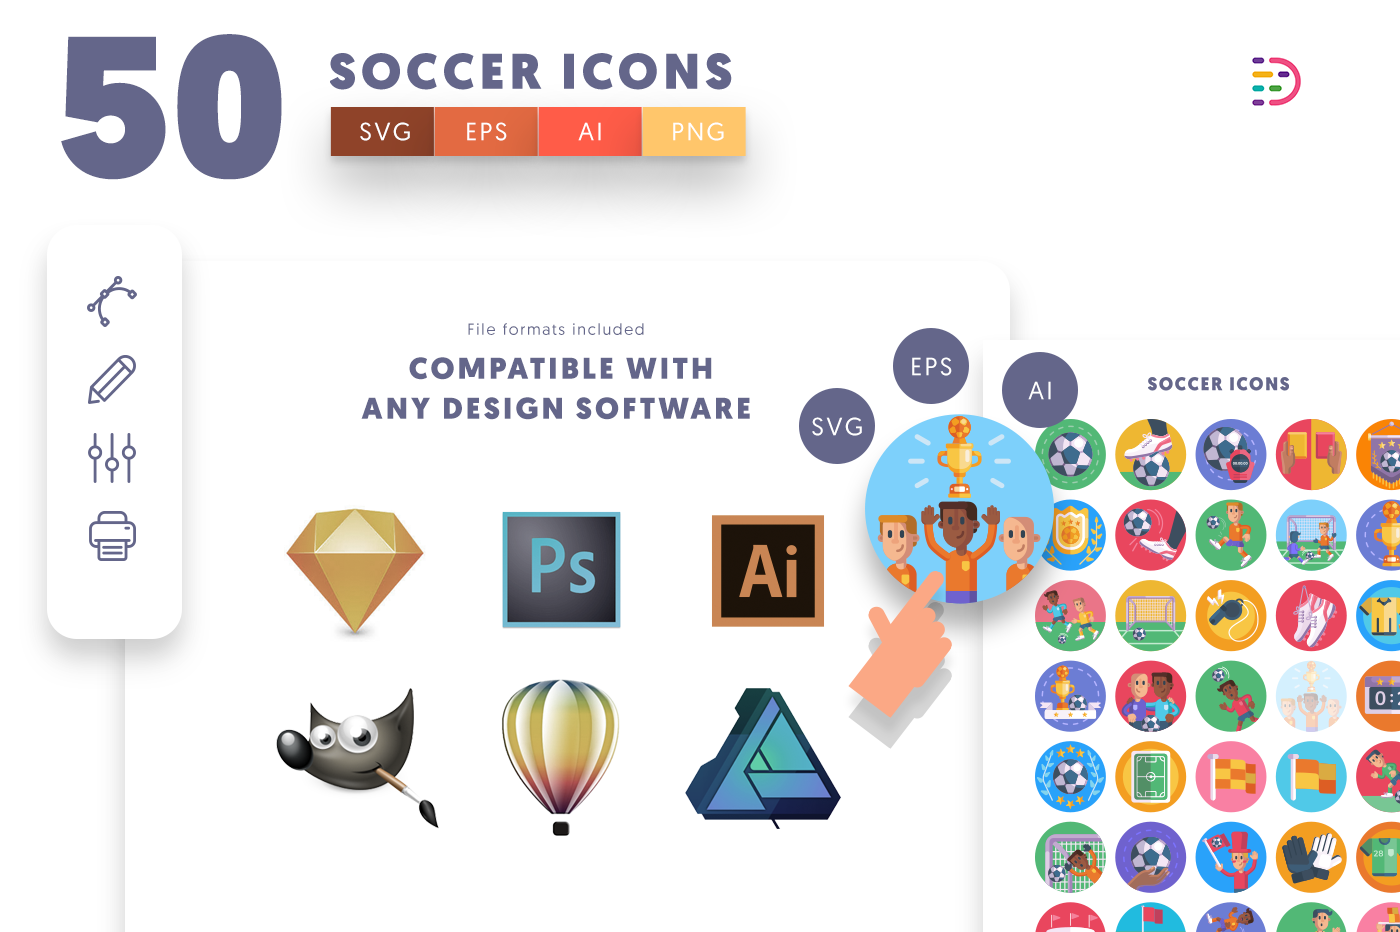 full vector 50 Soccer Icons EPS, SVG, PNG